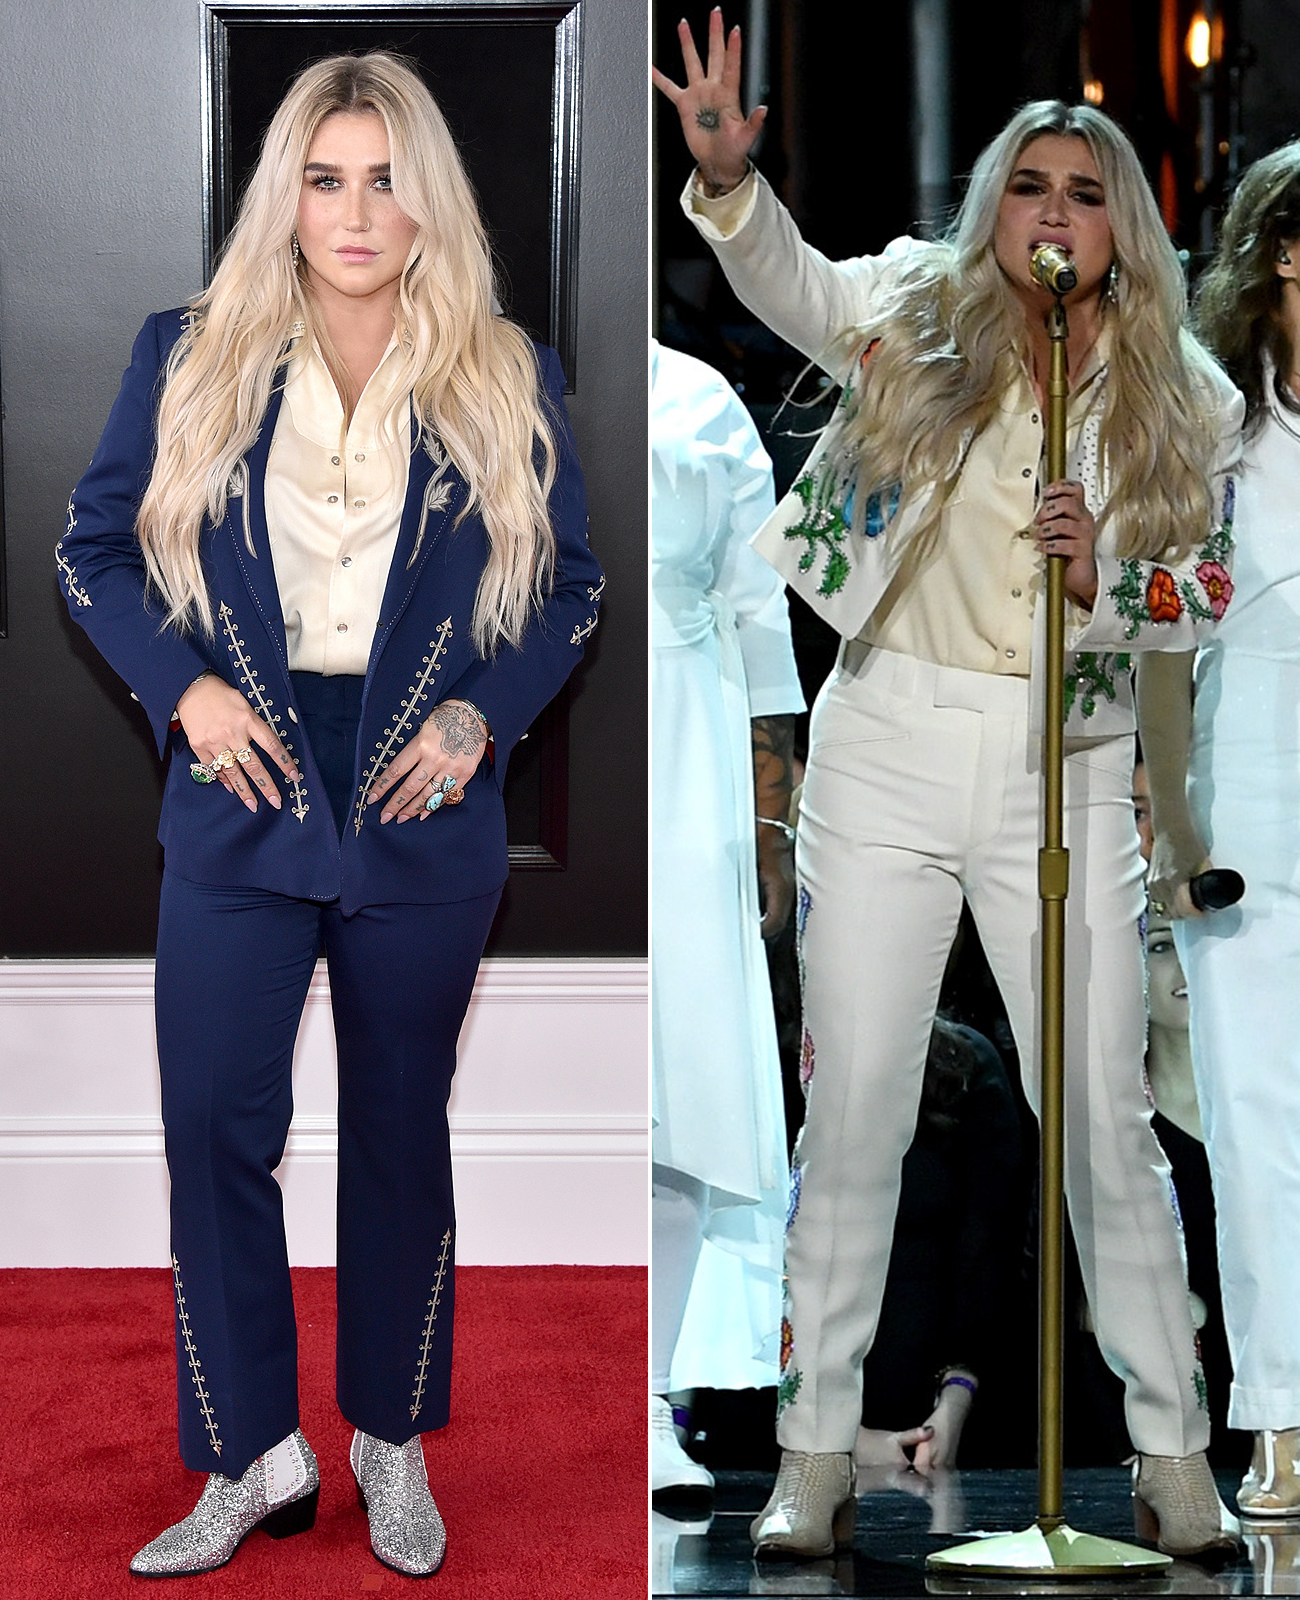 outfit-changes-kesha